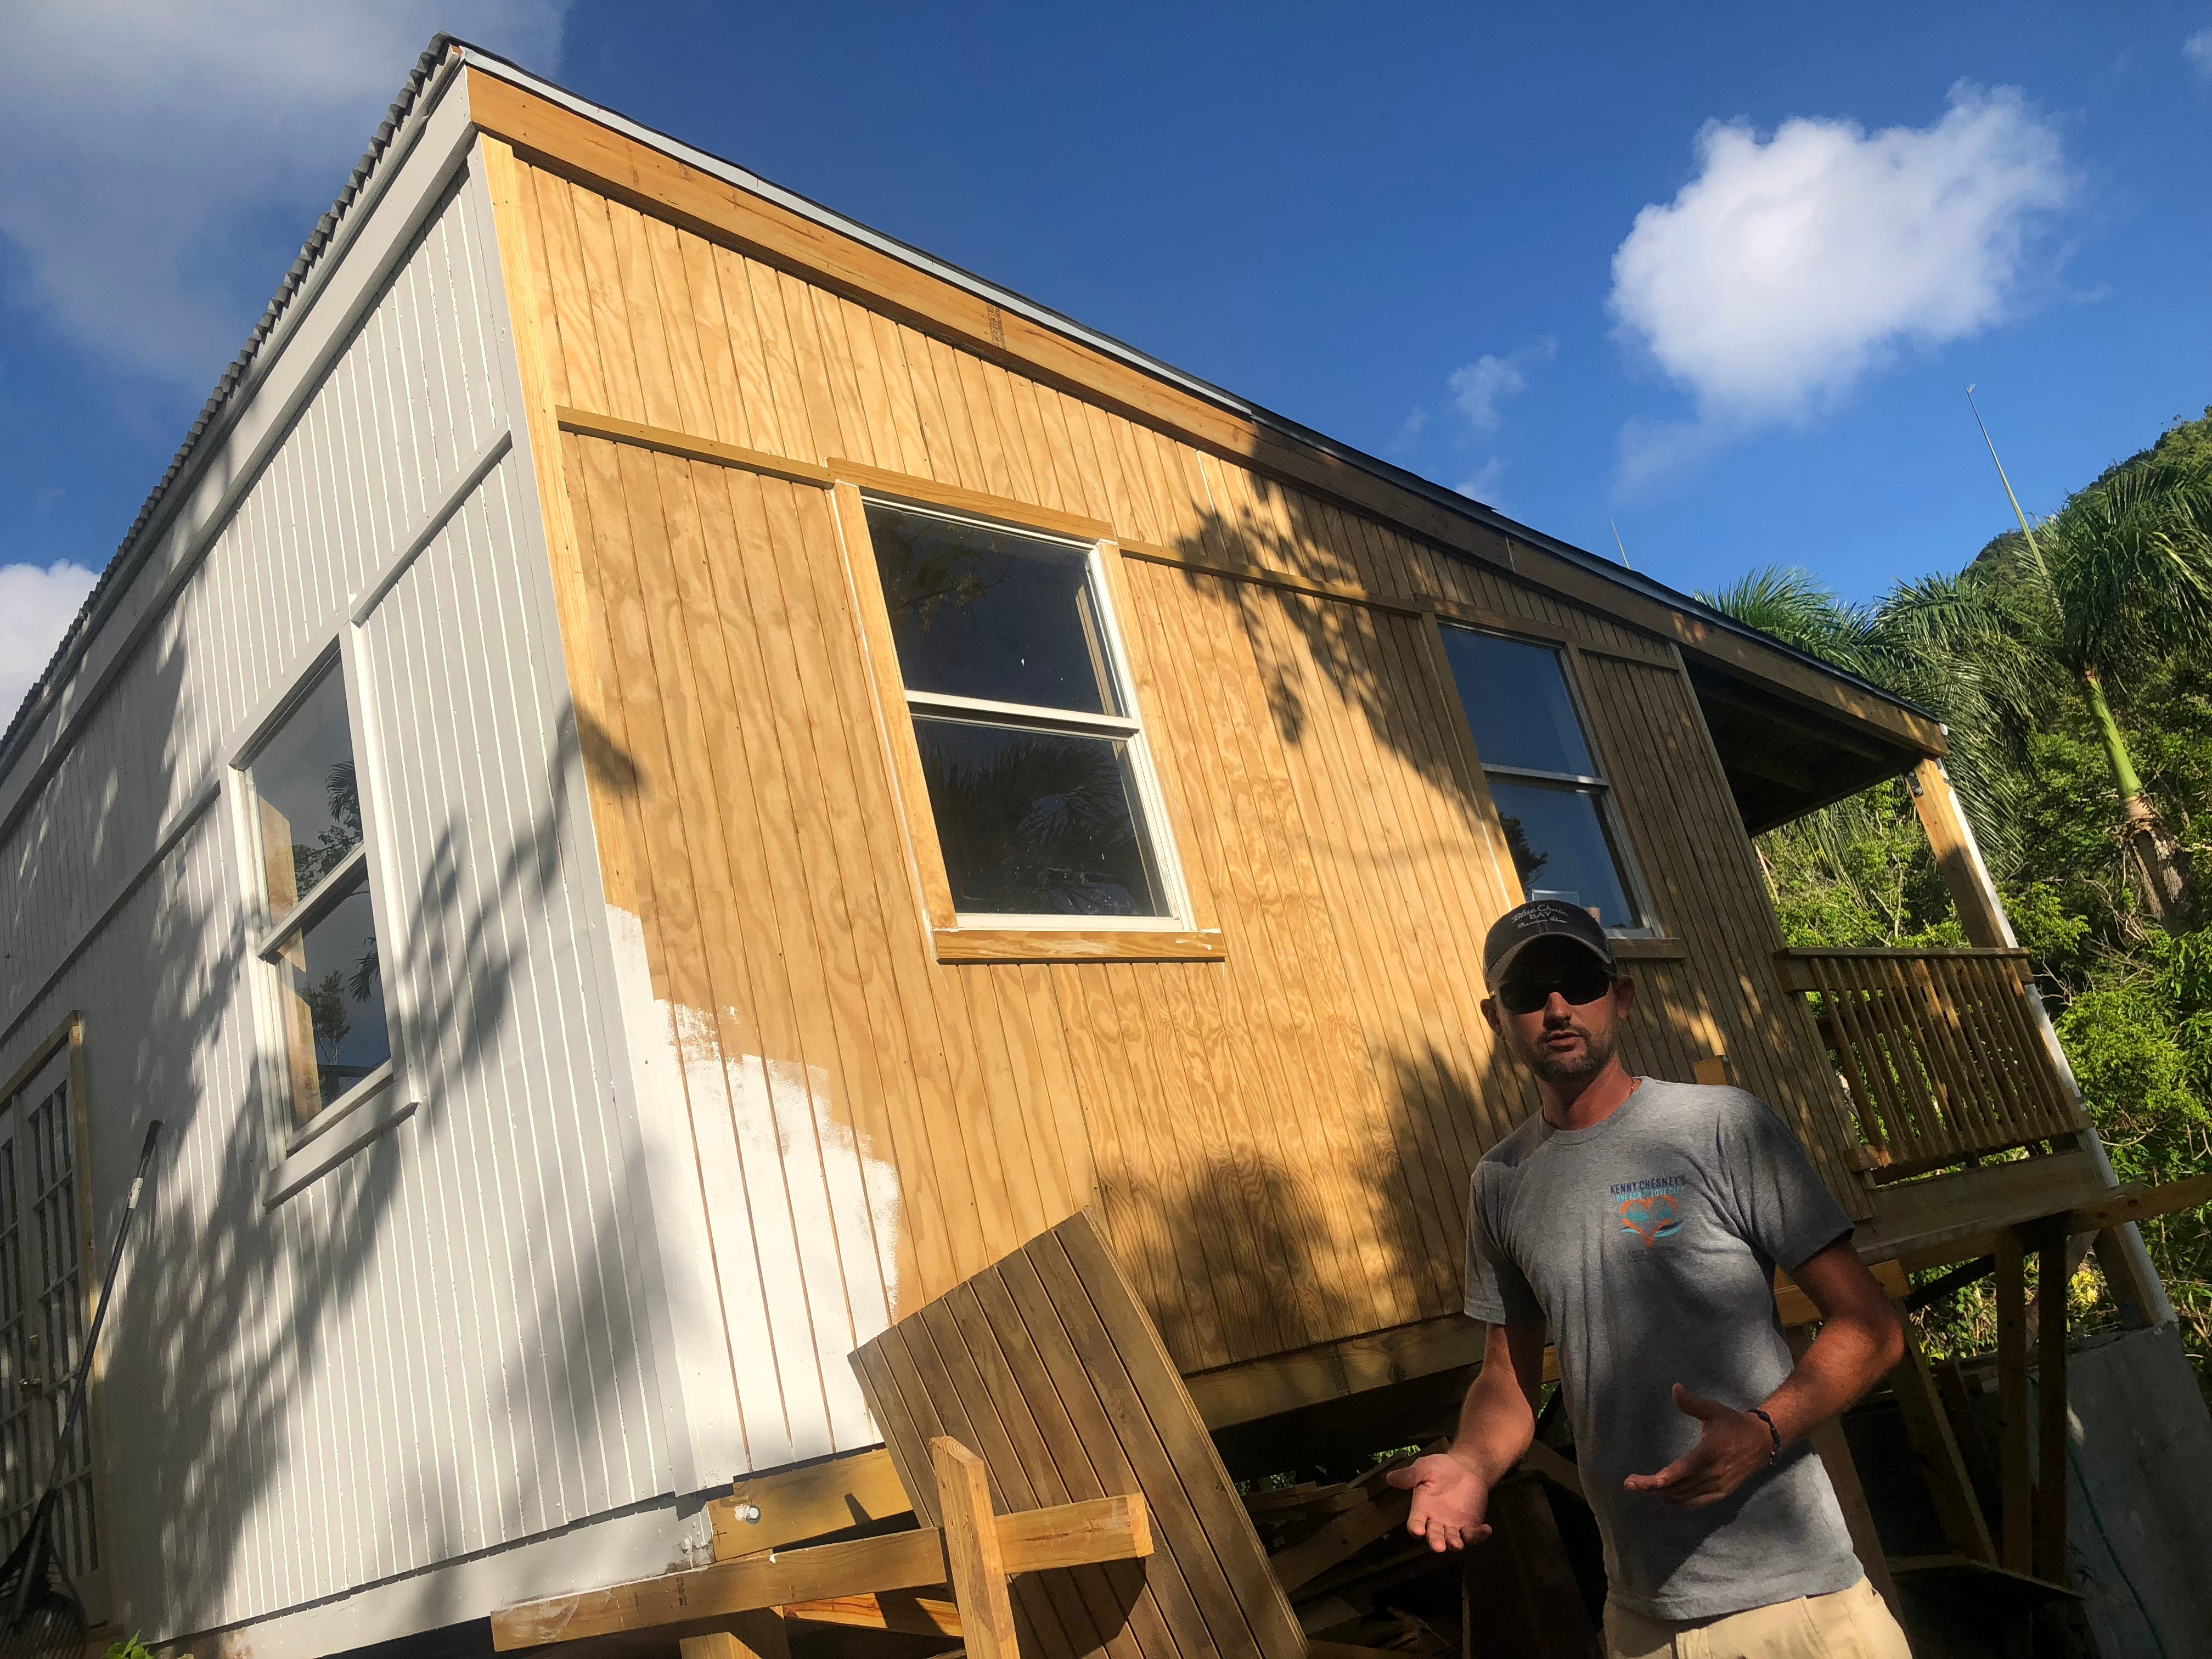 Jeff Quinlan leads the efforts of Love for Love City Foundation, started by country music star Kenny Chesney, which has repaired more than 100 roofs and built five new homes on St. John.